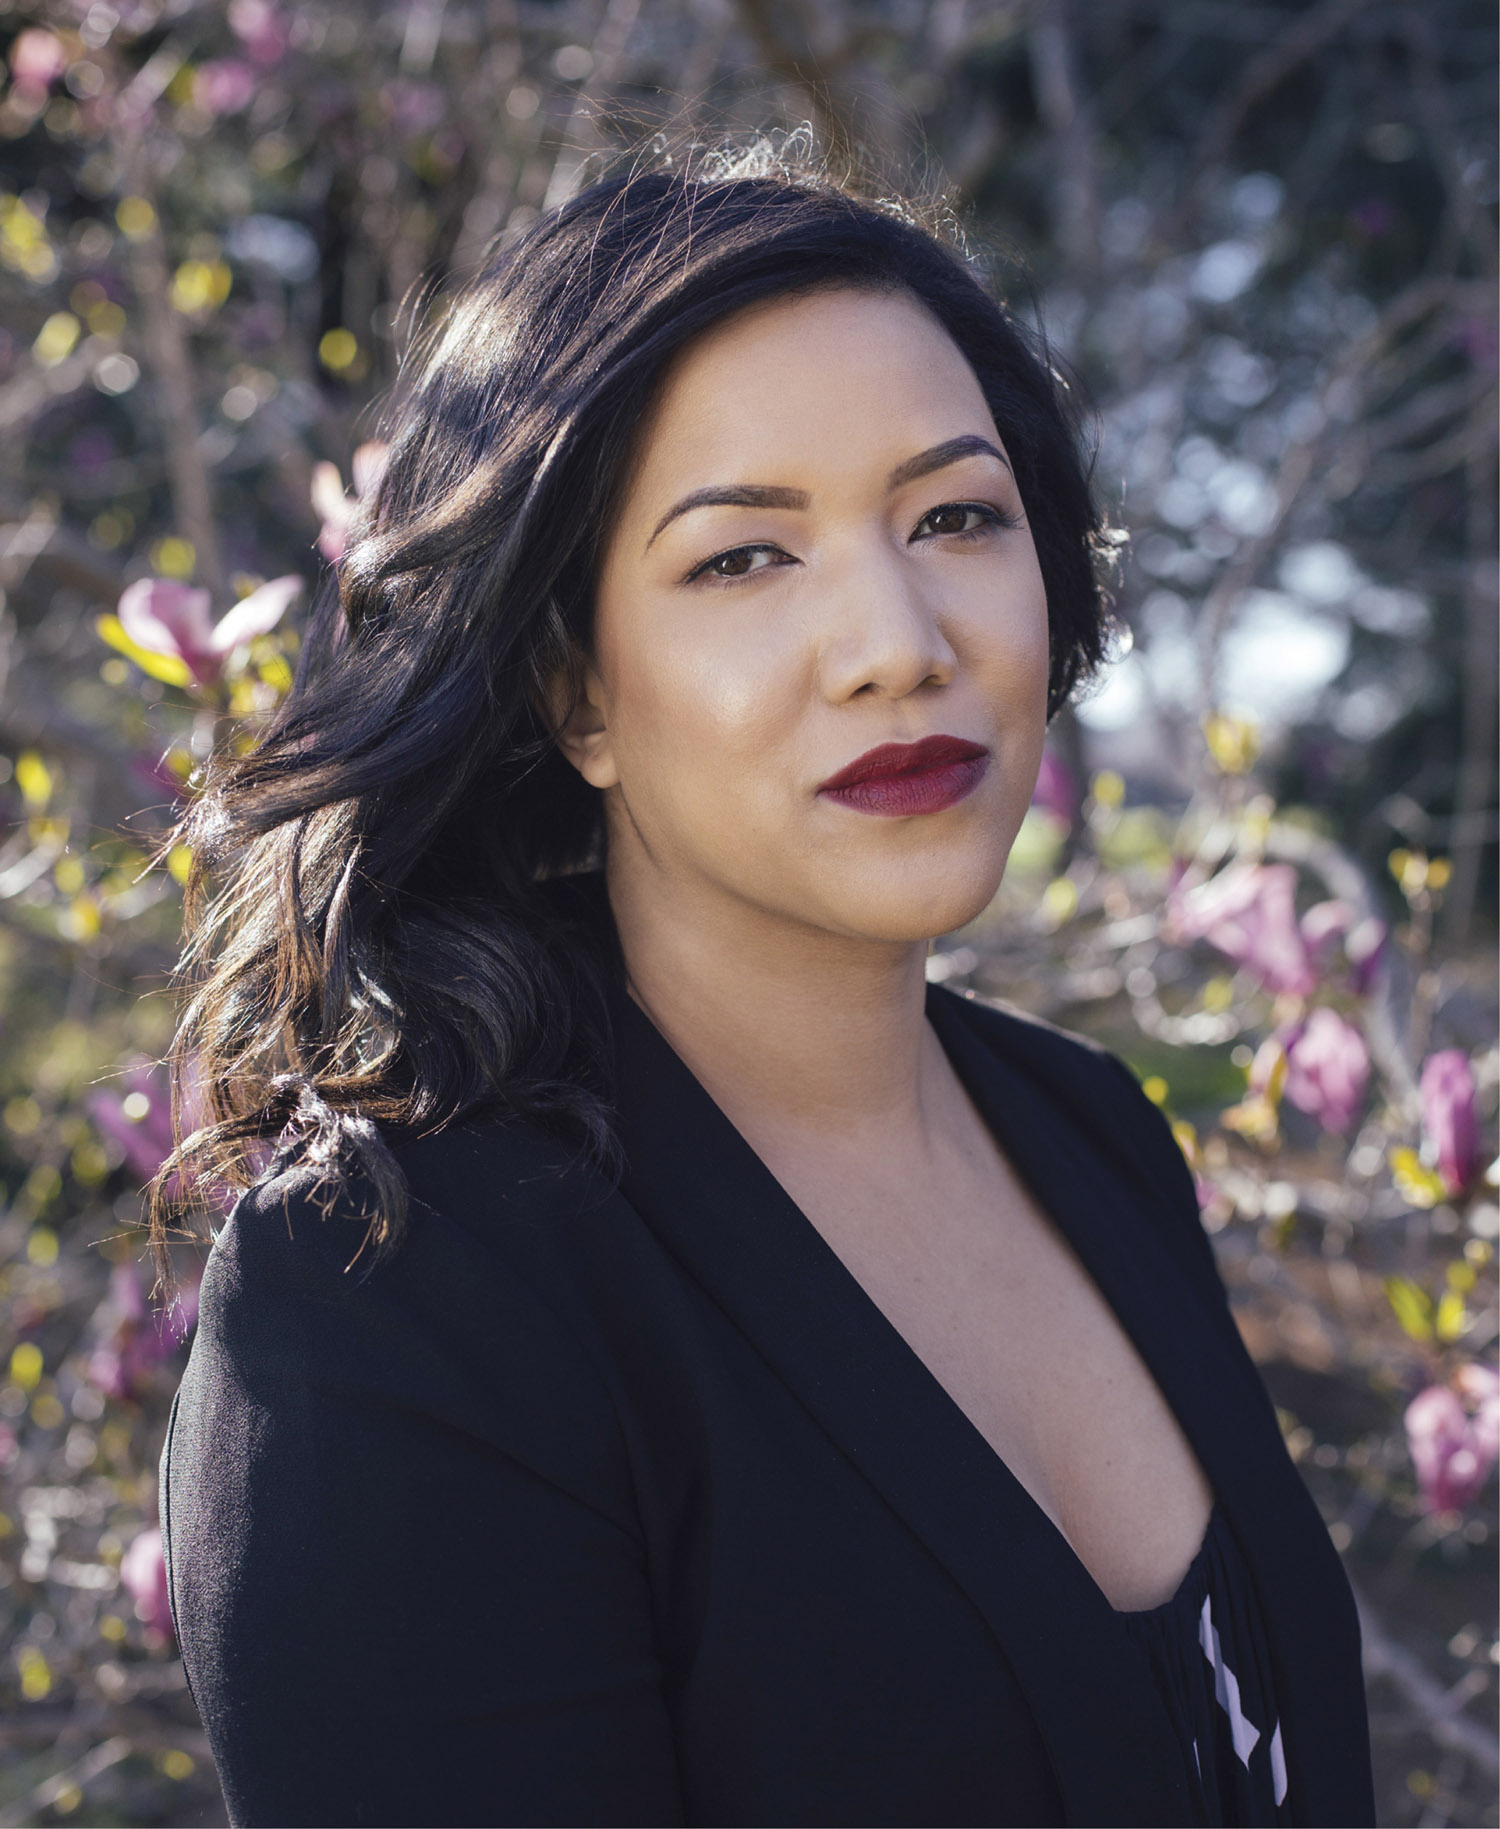 Drawing upon a rich background of life experiences and an unflinching desire to challenge injustice, Tiana Clark has emerged as one of America's most electrifying new poets. (DANIEL MEIGS)